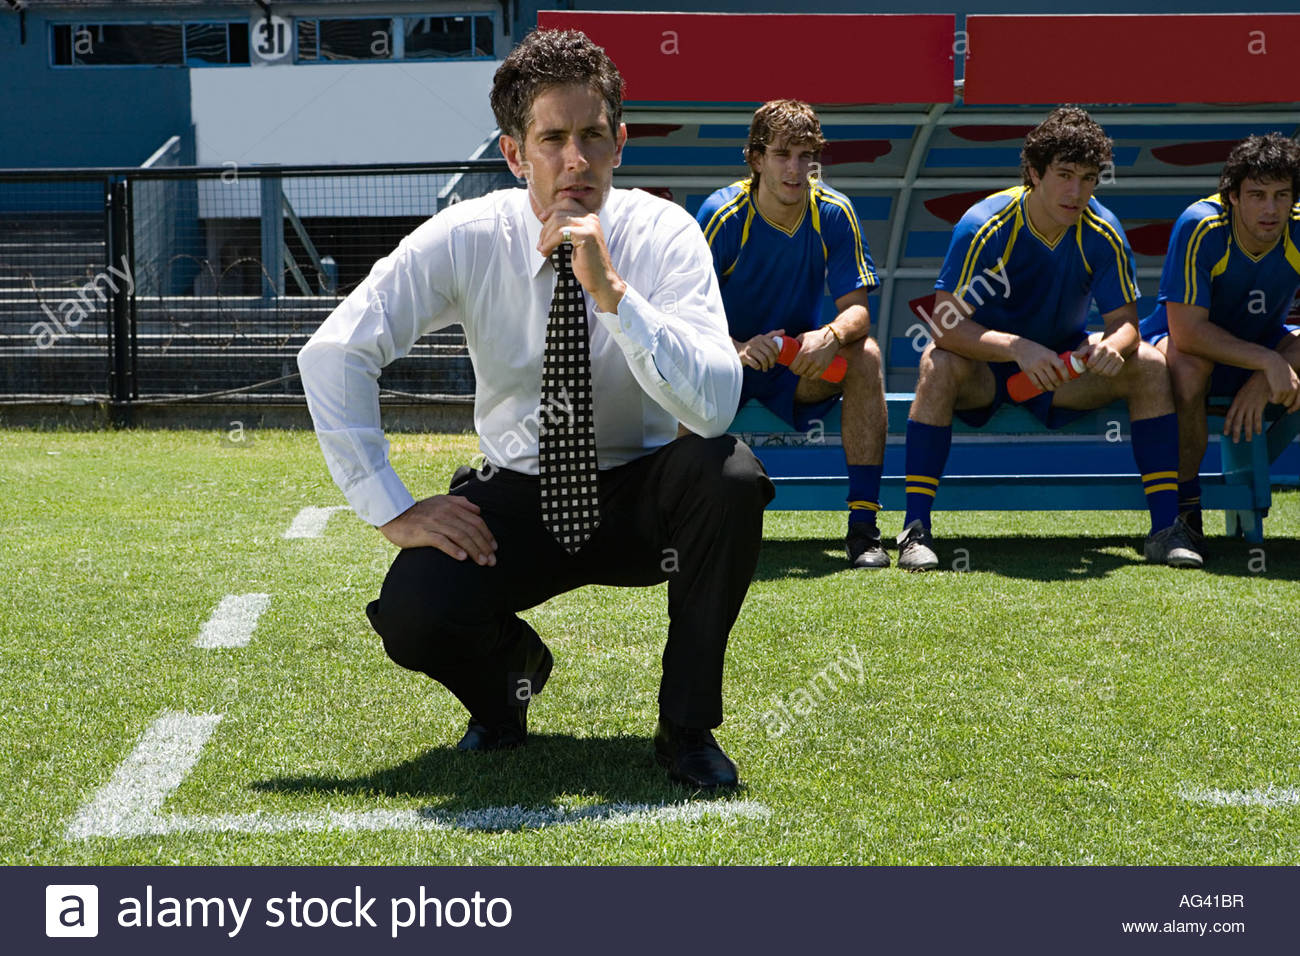 Football manager watching football match Stock Photo